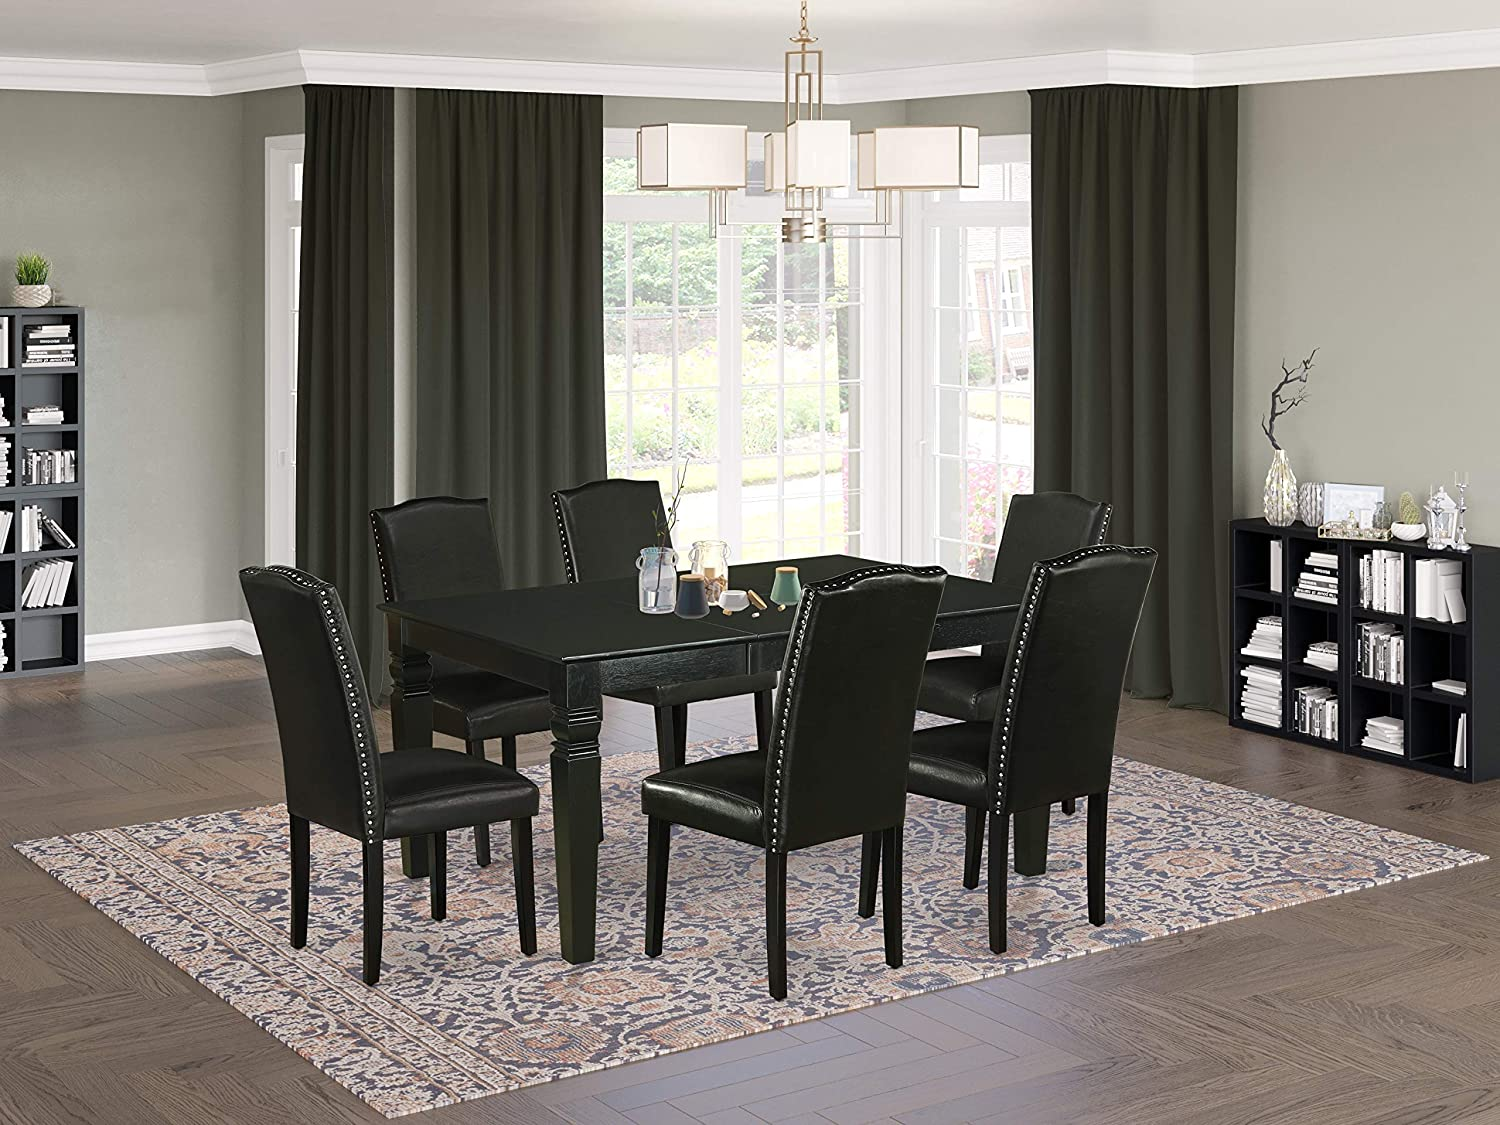 East West Furniture 7Pc Dinette Set Includes a Rectangular 42/60 Inch Dining Table with Butterfly Leaf and 6 Parson Chair Leg and PU Leather Color Black